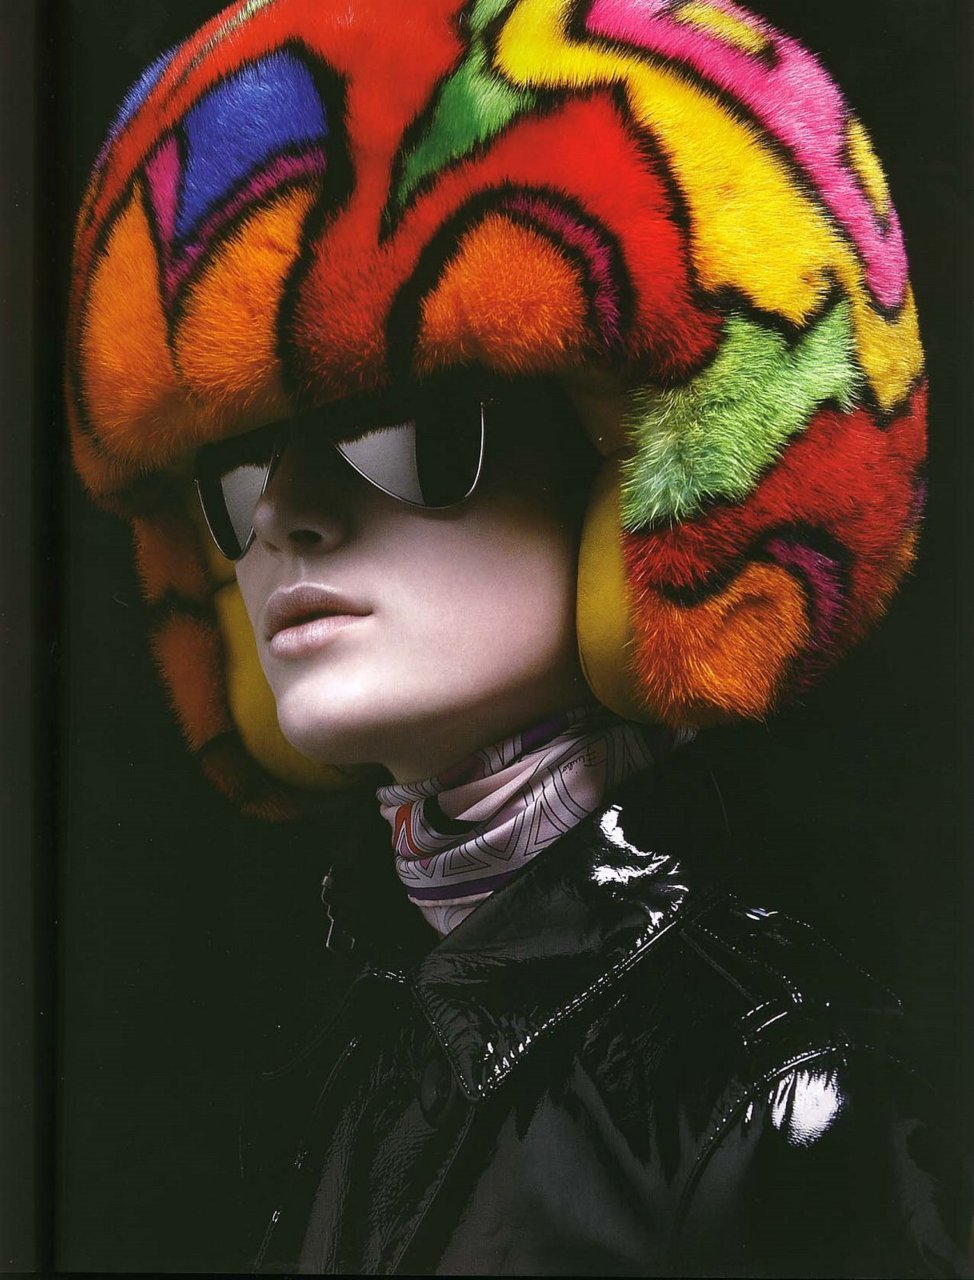 Plastique, October 2007Fur helmet by Søren Bach